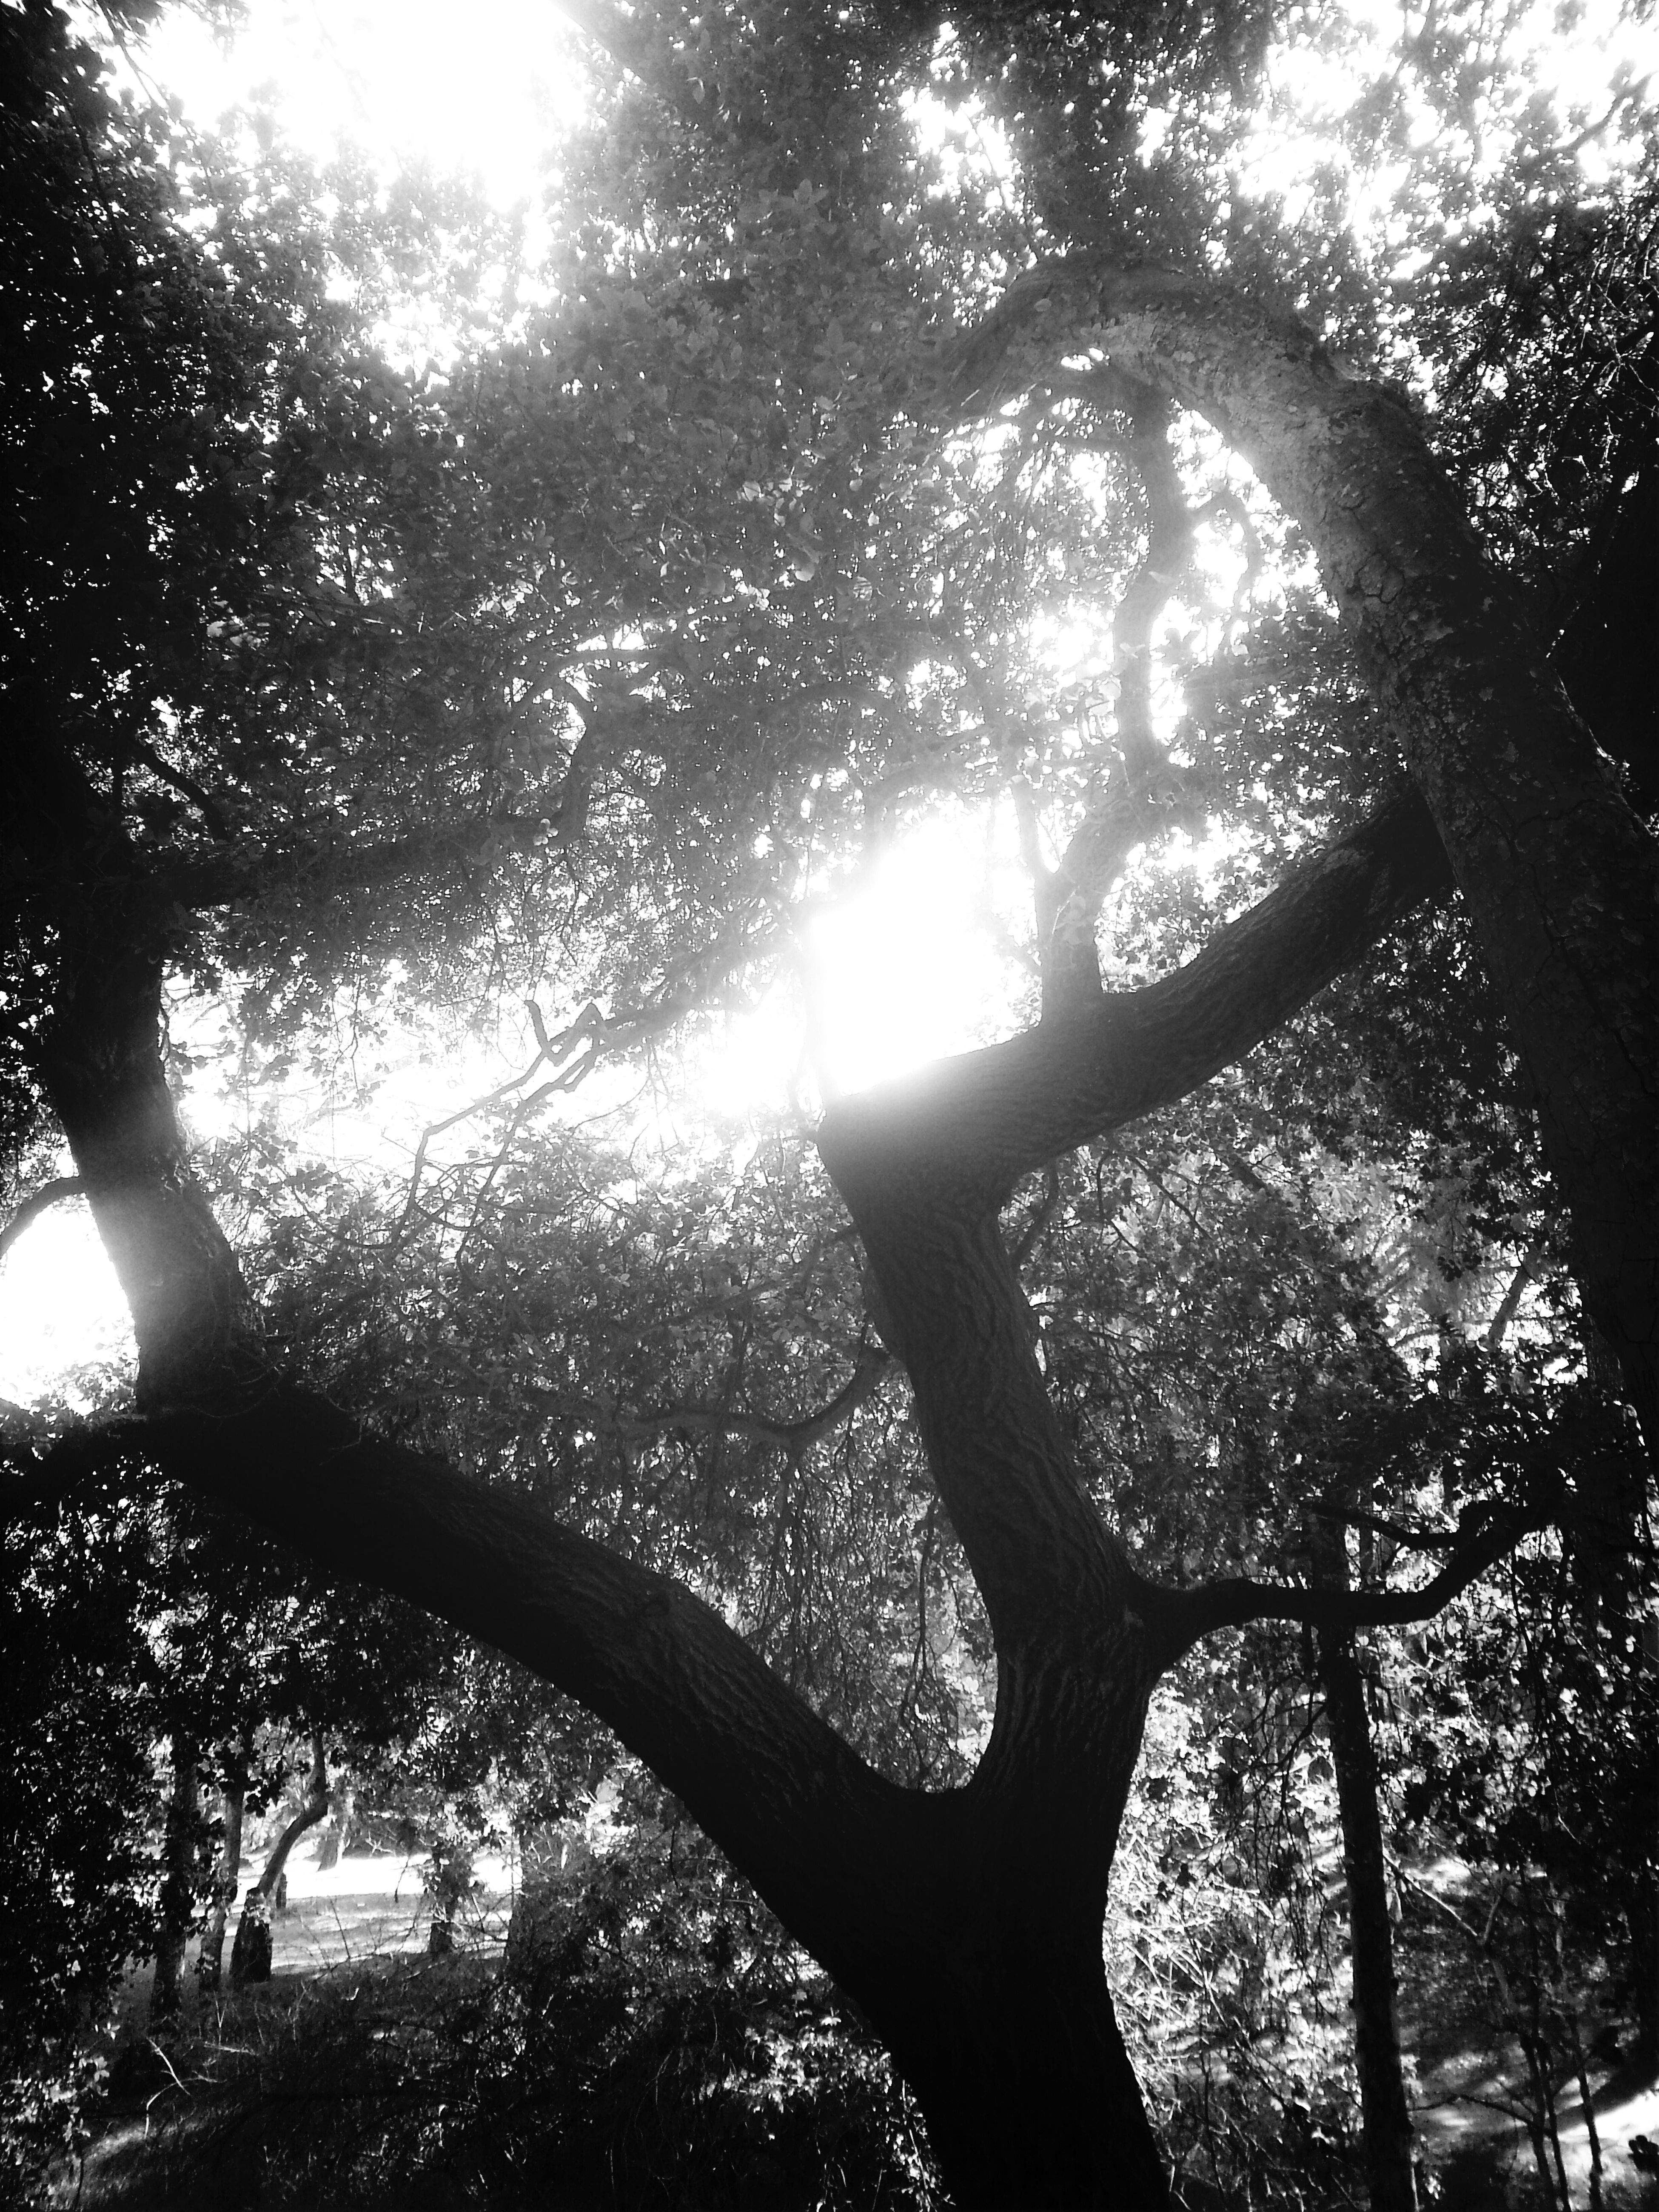 City Of Lost Angels has many Trends So peacefully Haunting  Bonifiedin its Swagger Boldy Rooted while in Drought ▲♧☆▲Fearless in it's Treeline ◆Melancholy In Its Nature